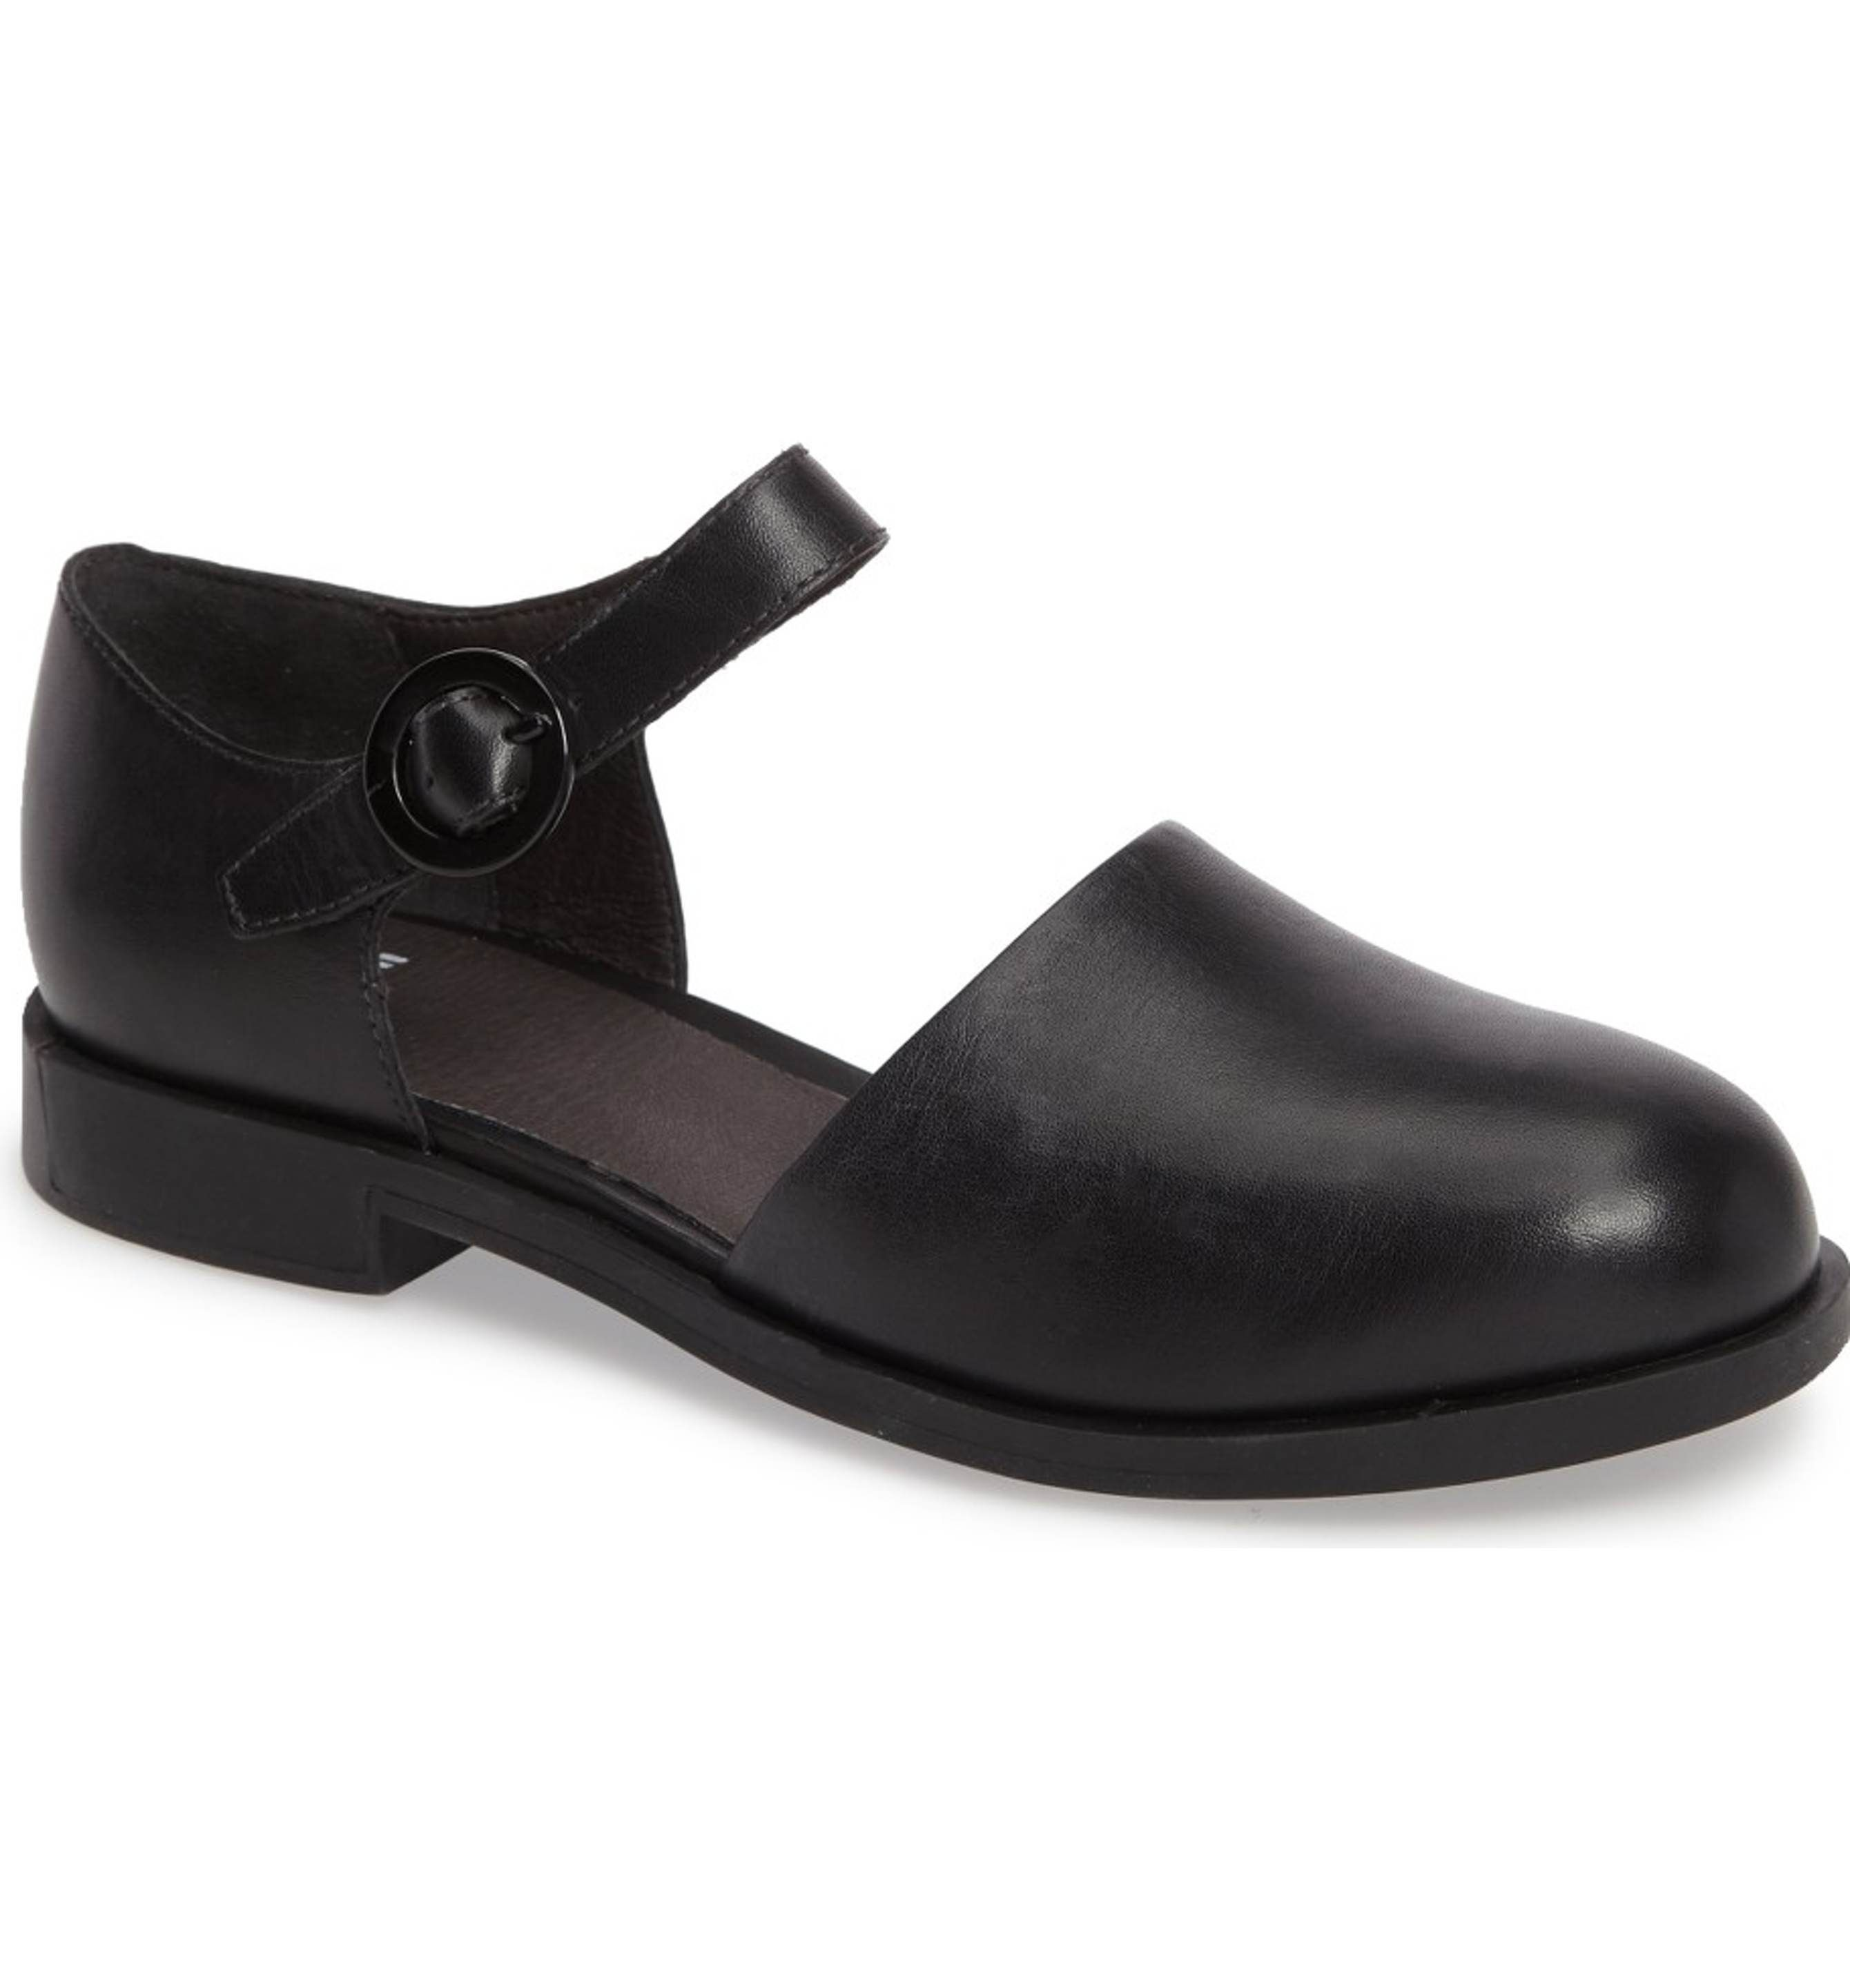 f82d537c075 Main Image - Camper Bowie Ankle Strap Loafer (Women)